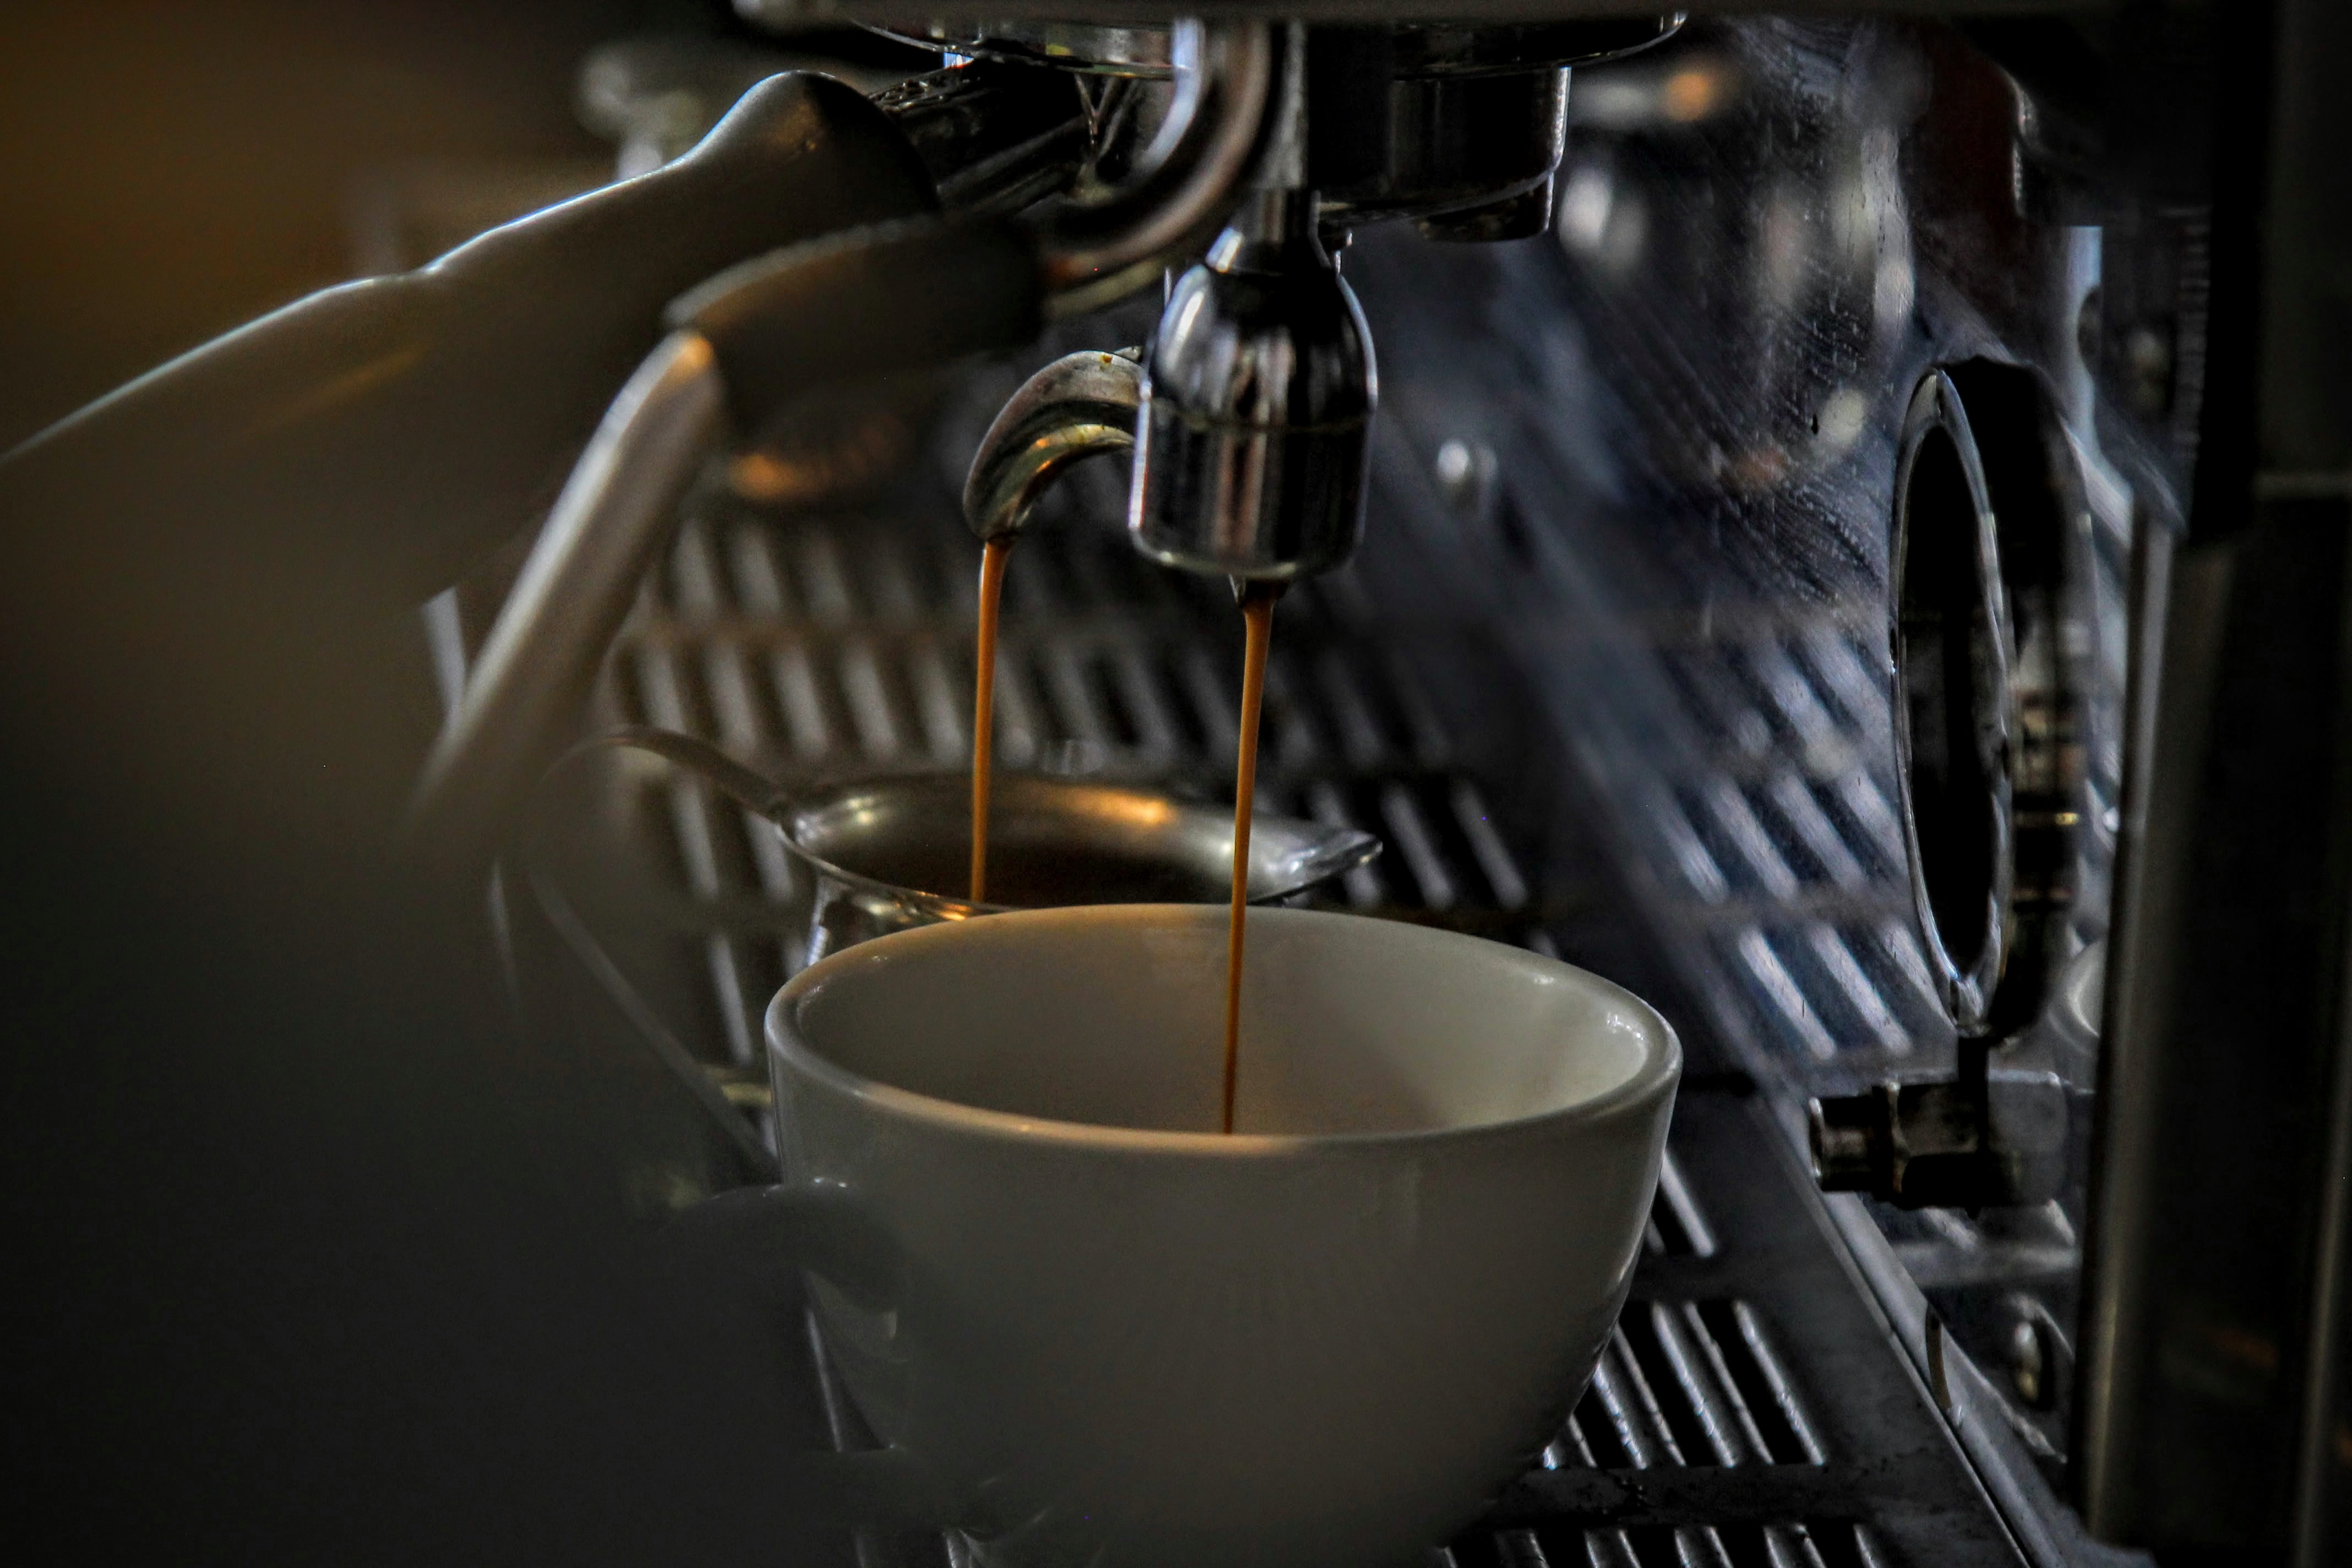 An espresso shot pulls into a white cup in a dim atmosphere.